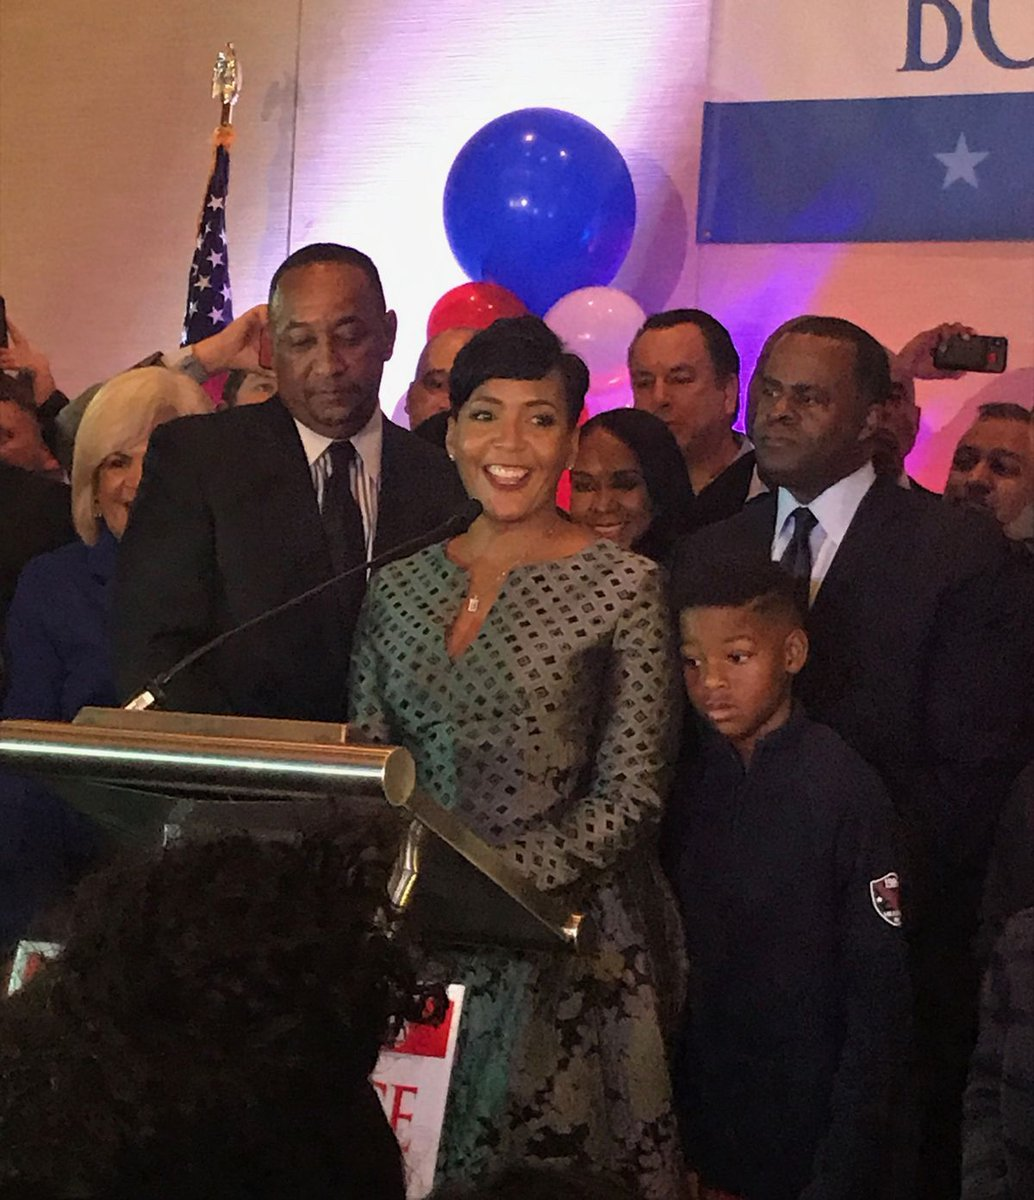 Atlanta just elected its secon keisha lance bottoms